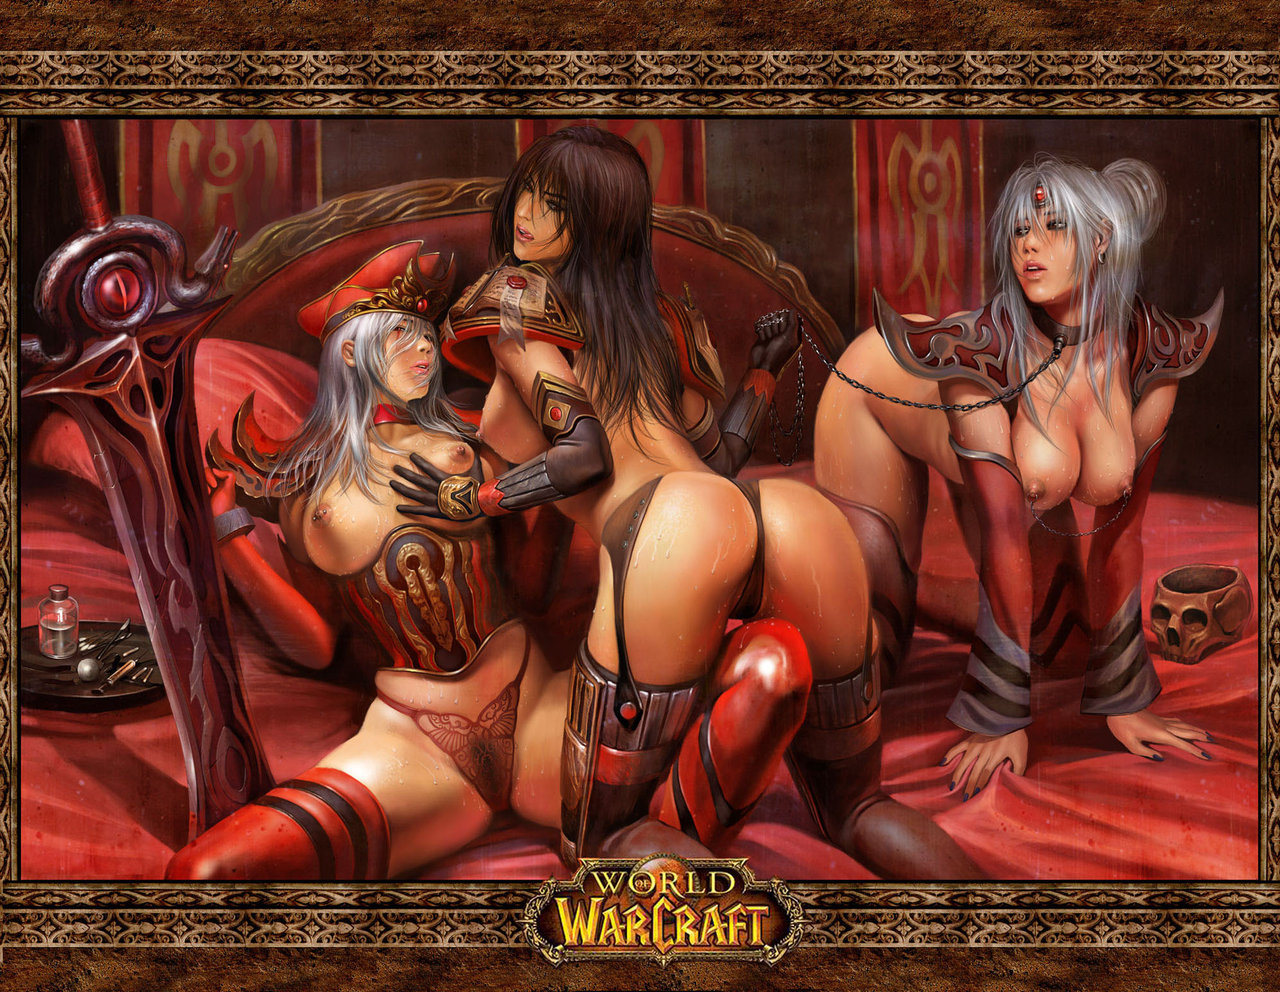 Fuck warcraft photos erotic film